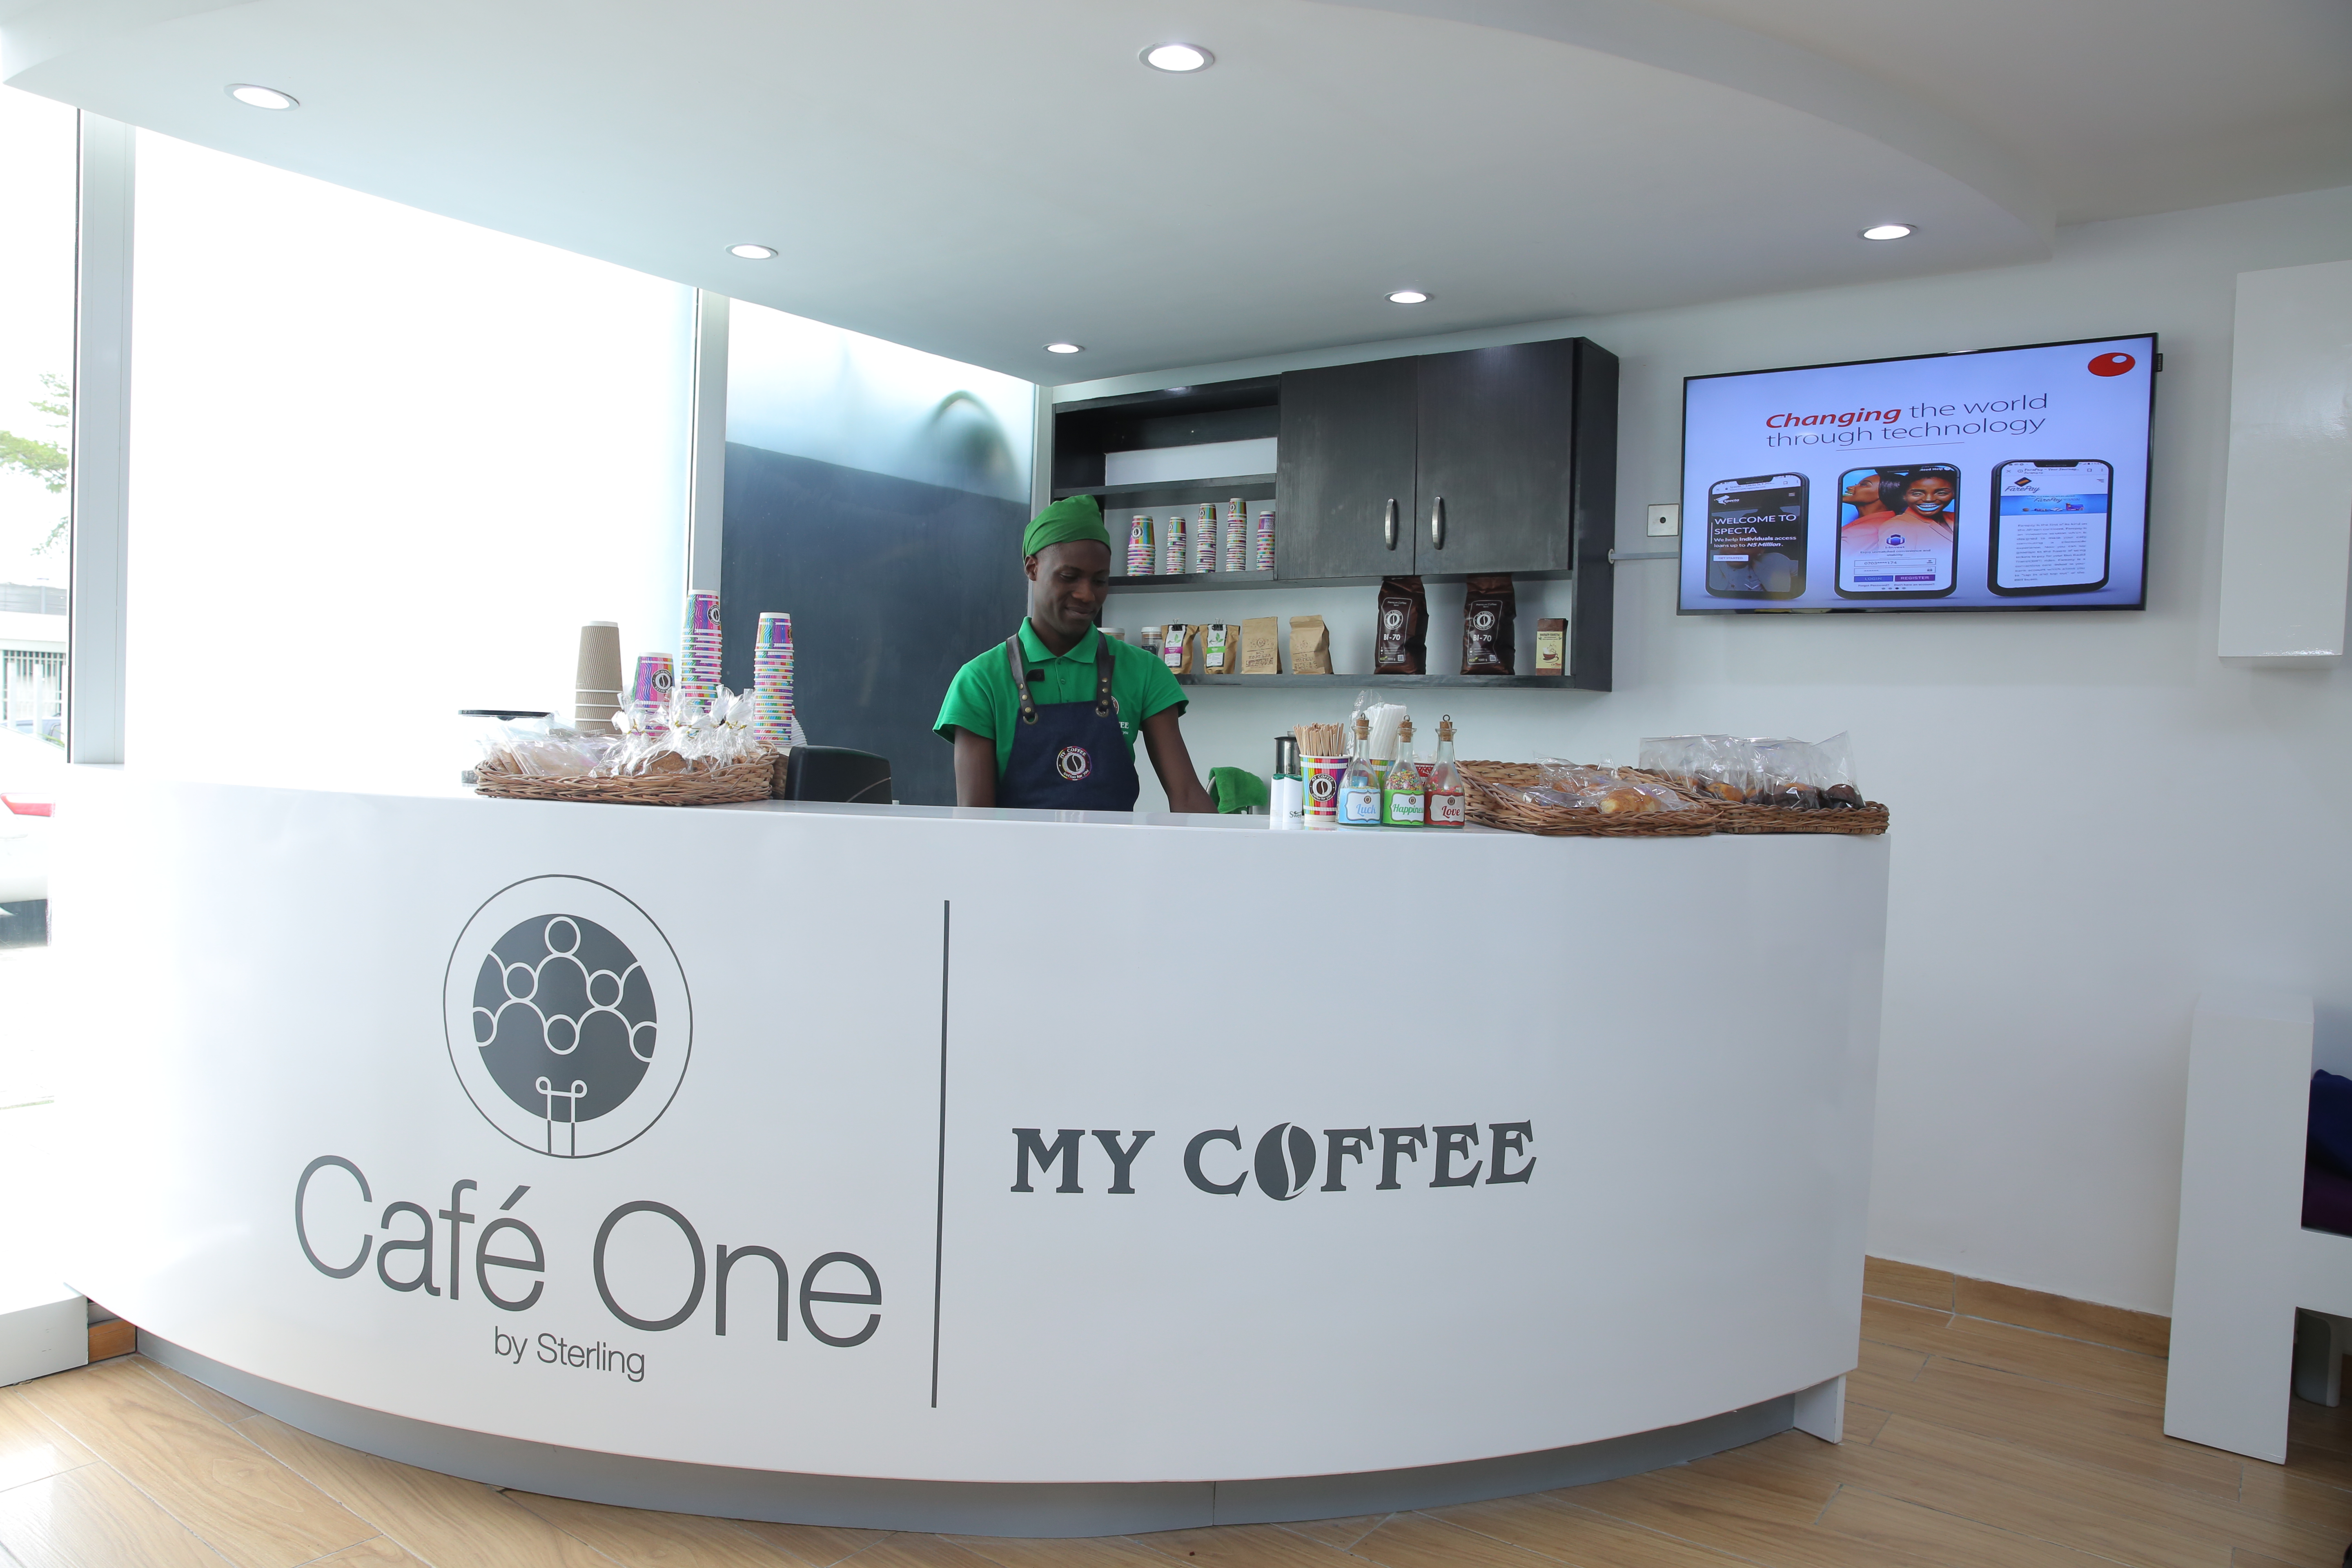 Cowork, Ideate, Network while sipping Coffee at Café One